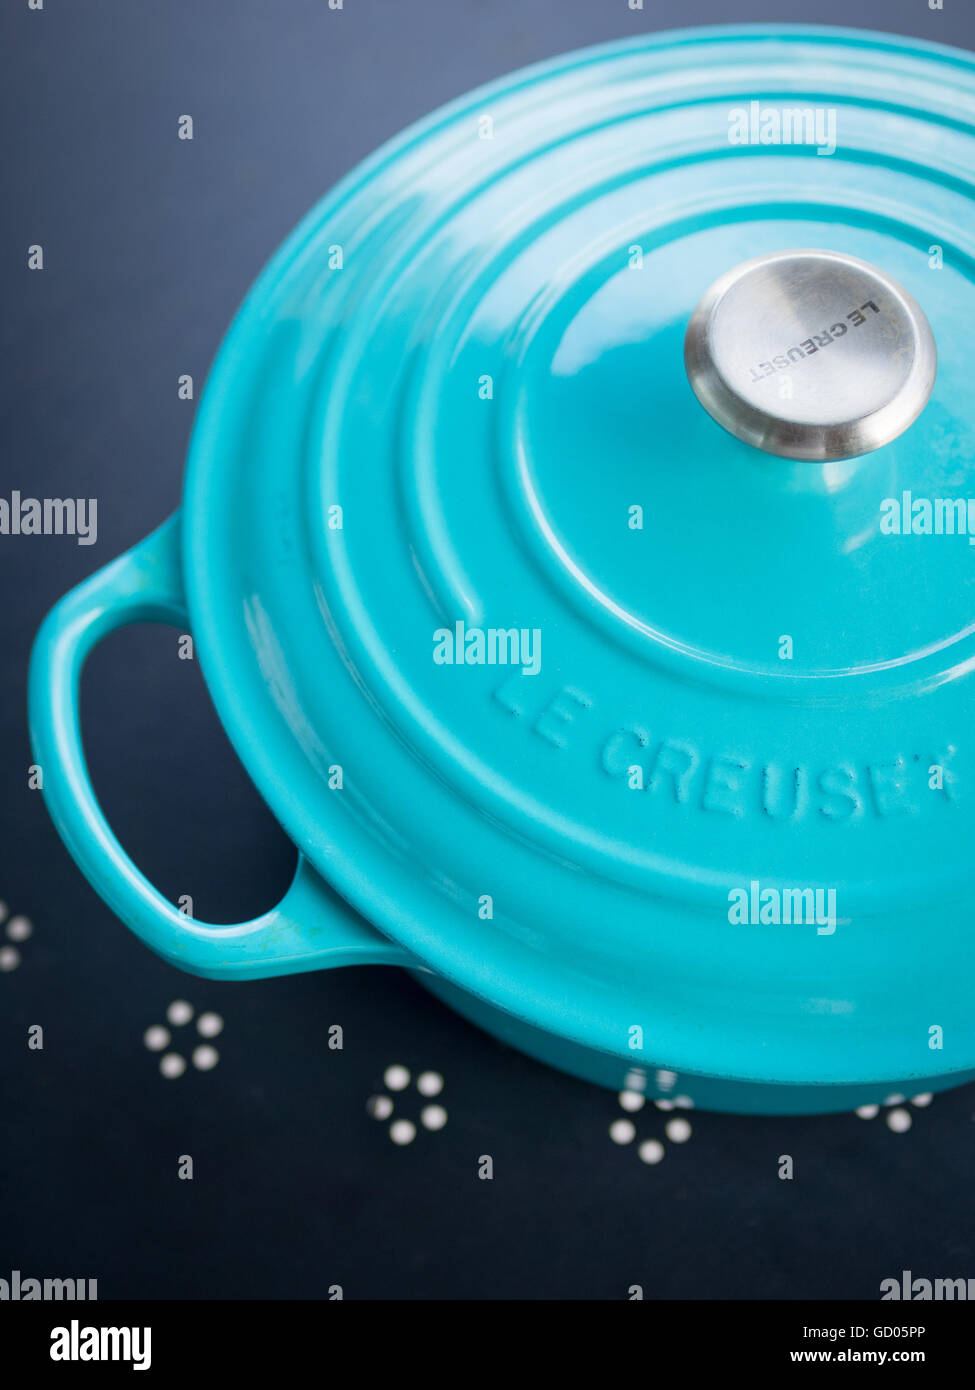 A signature Le Creuset enameled cast-iron French oven in 'Caribbean' (turquoise) colour. - Stock Image